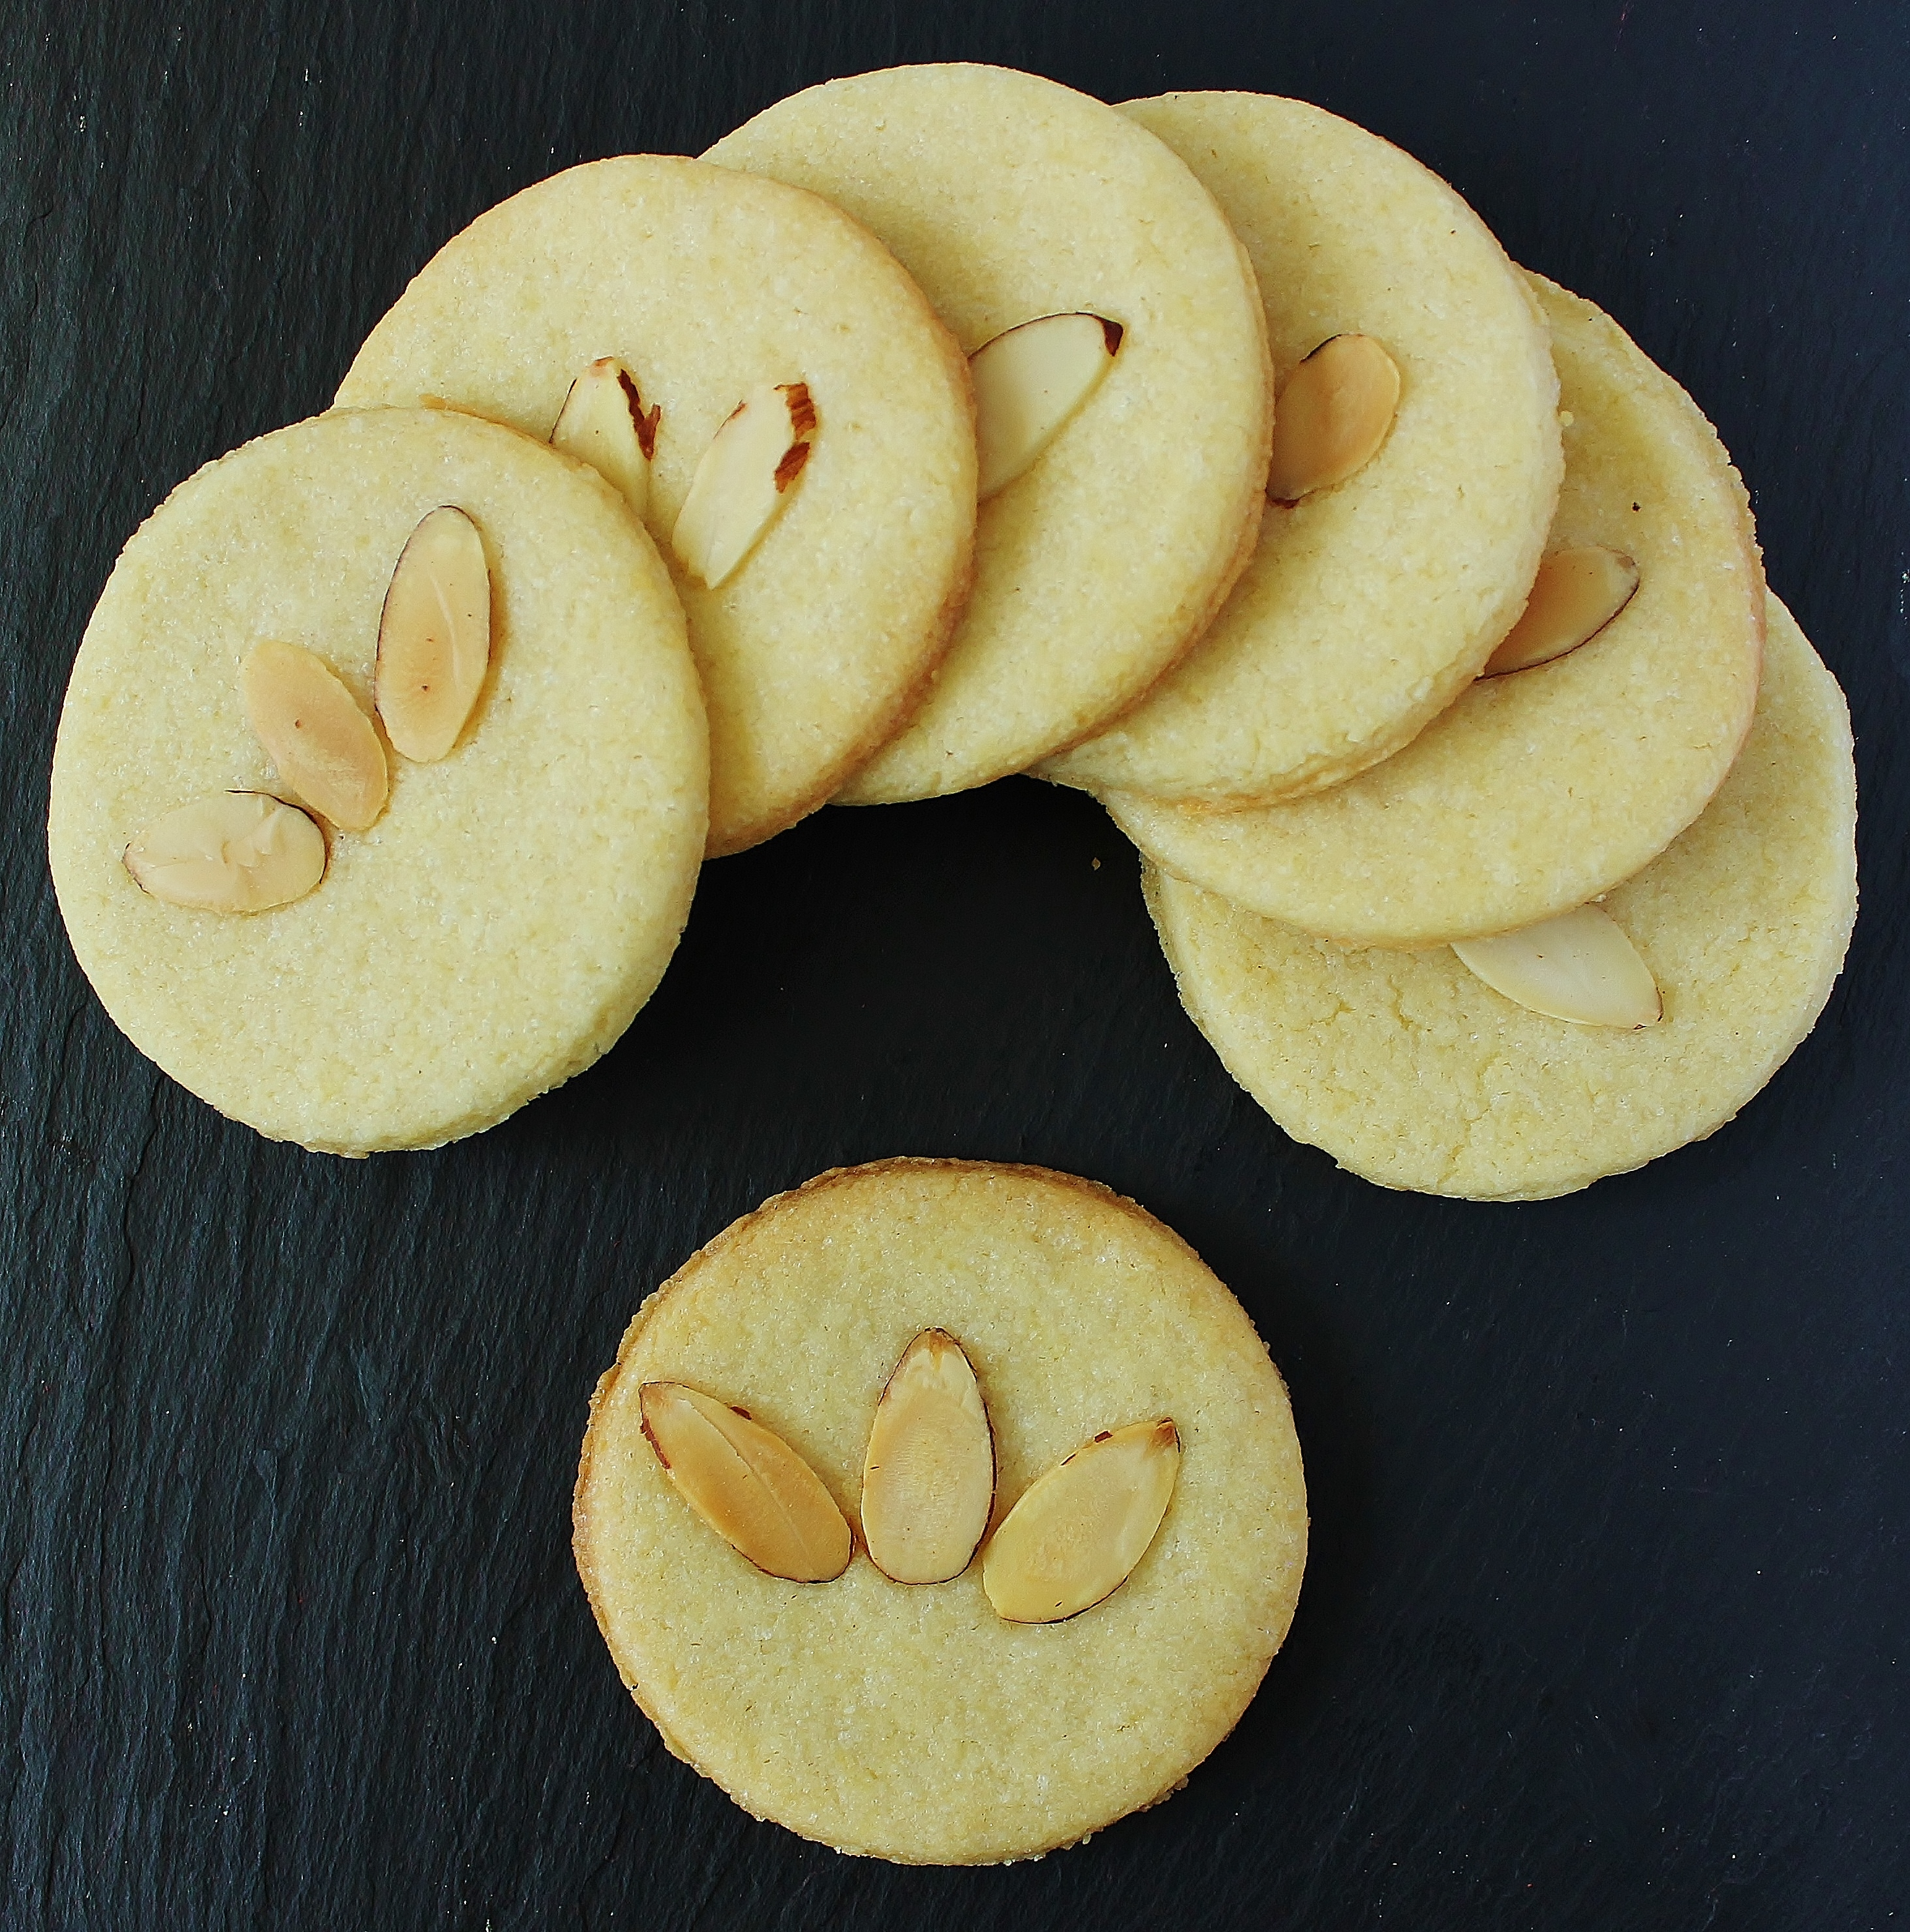 http://wonderlandrecipes.com/wp-content/uploads/2017/07/neverwhere-nutty-biscuits-d-3964.jpg